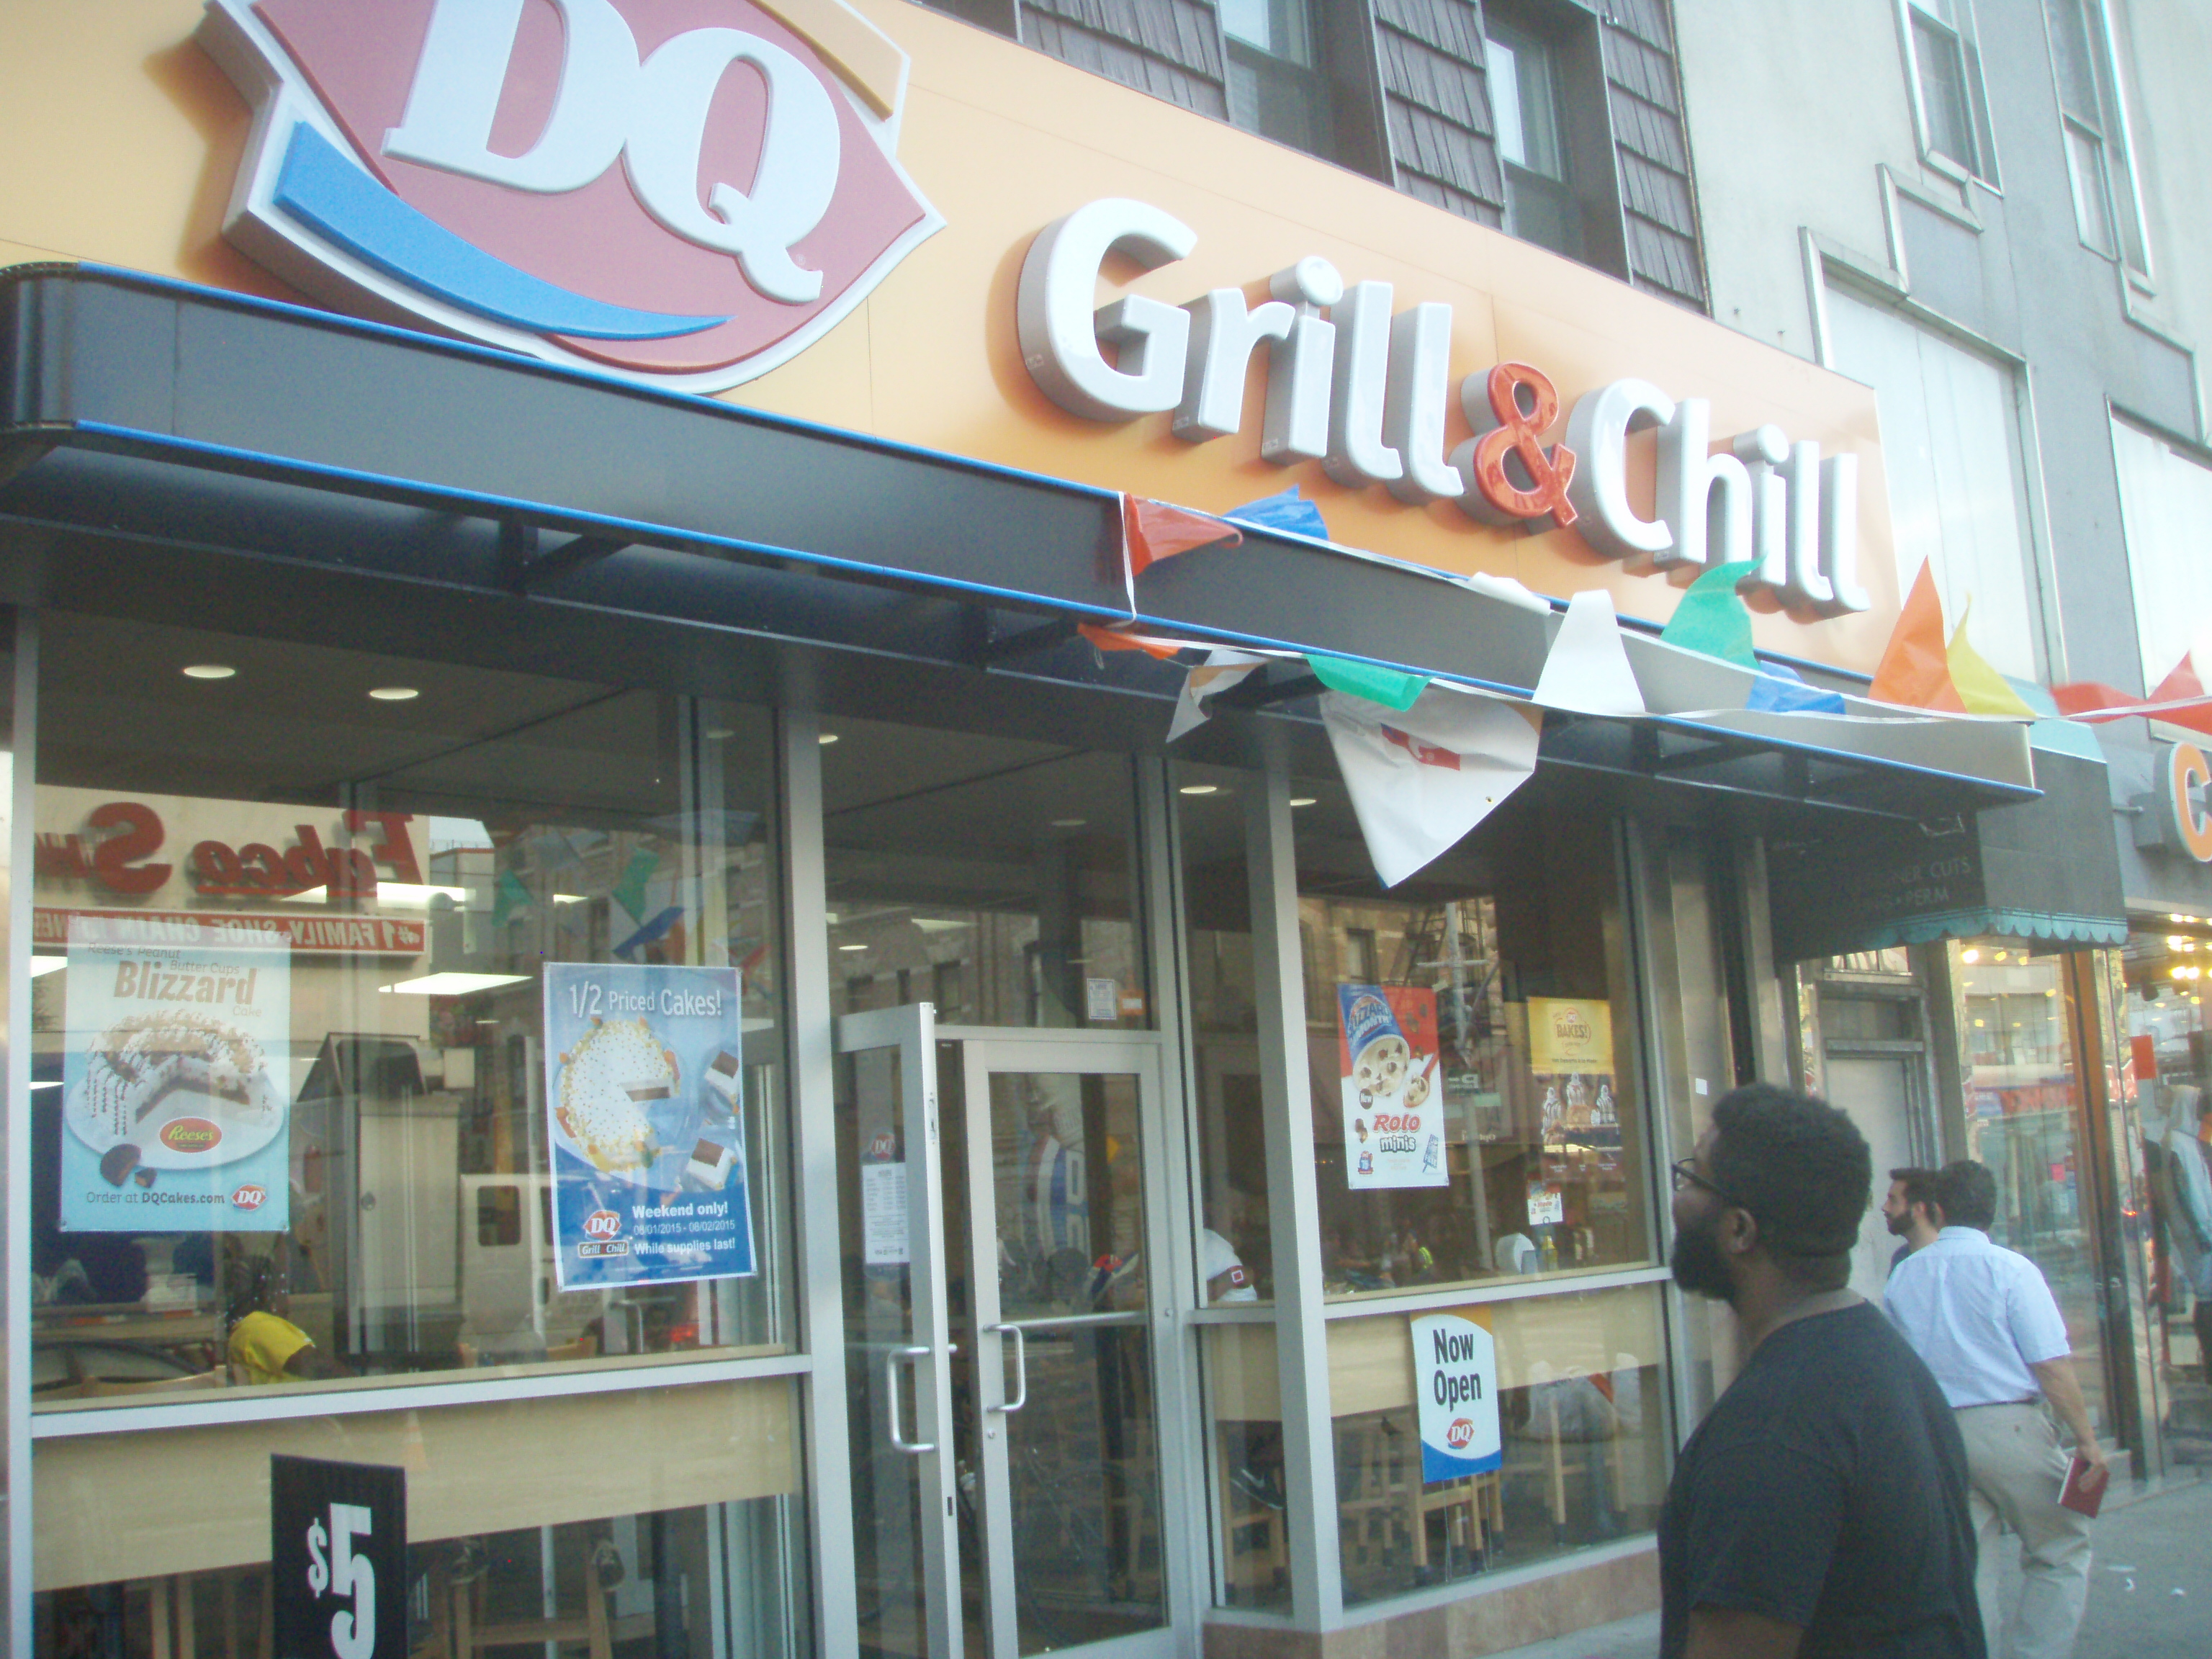 Dairy Queen S Brooklyn Debut Mighty Quinn S Chicken